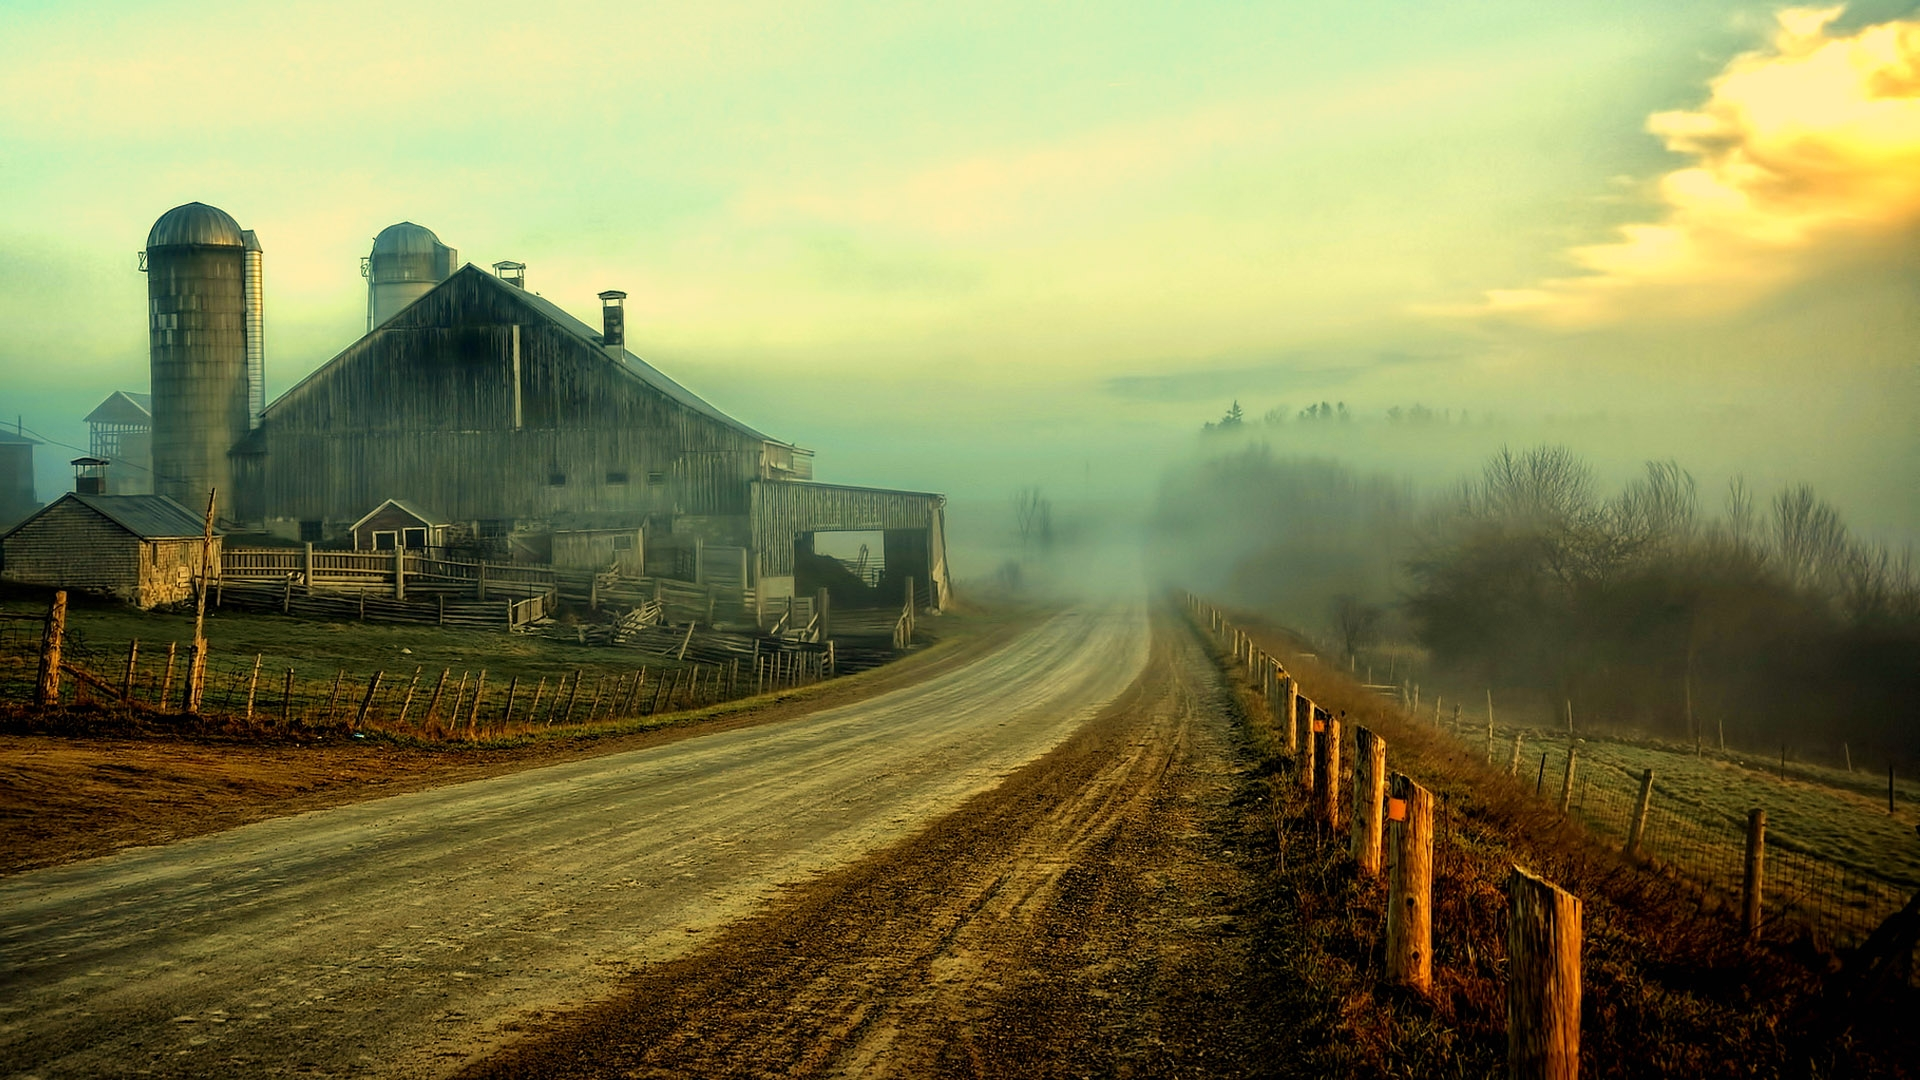 Nature Landscapes Farm Rustic Roads Fence Sky Clouds Houses Barn Wallpaper